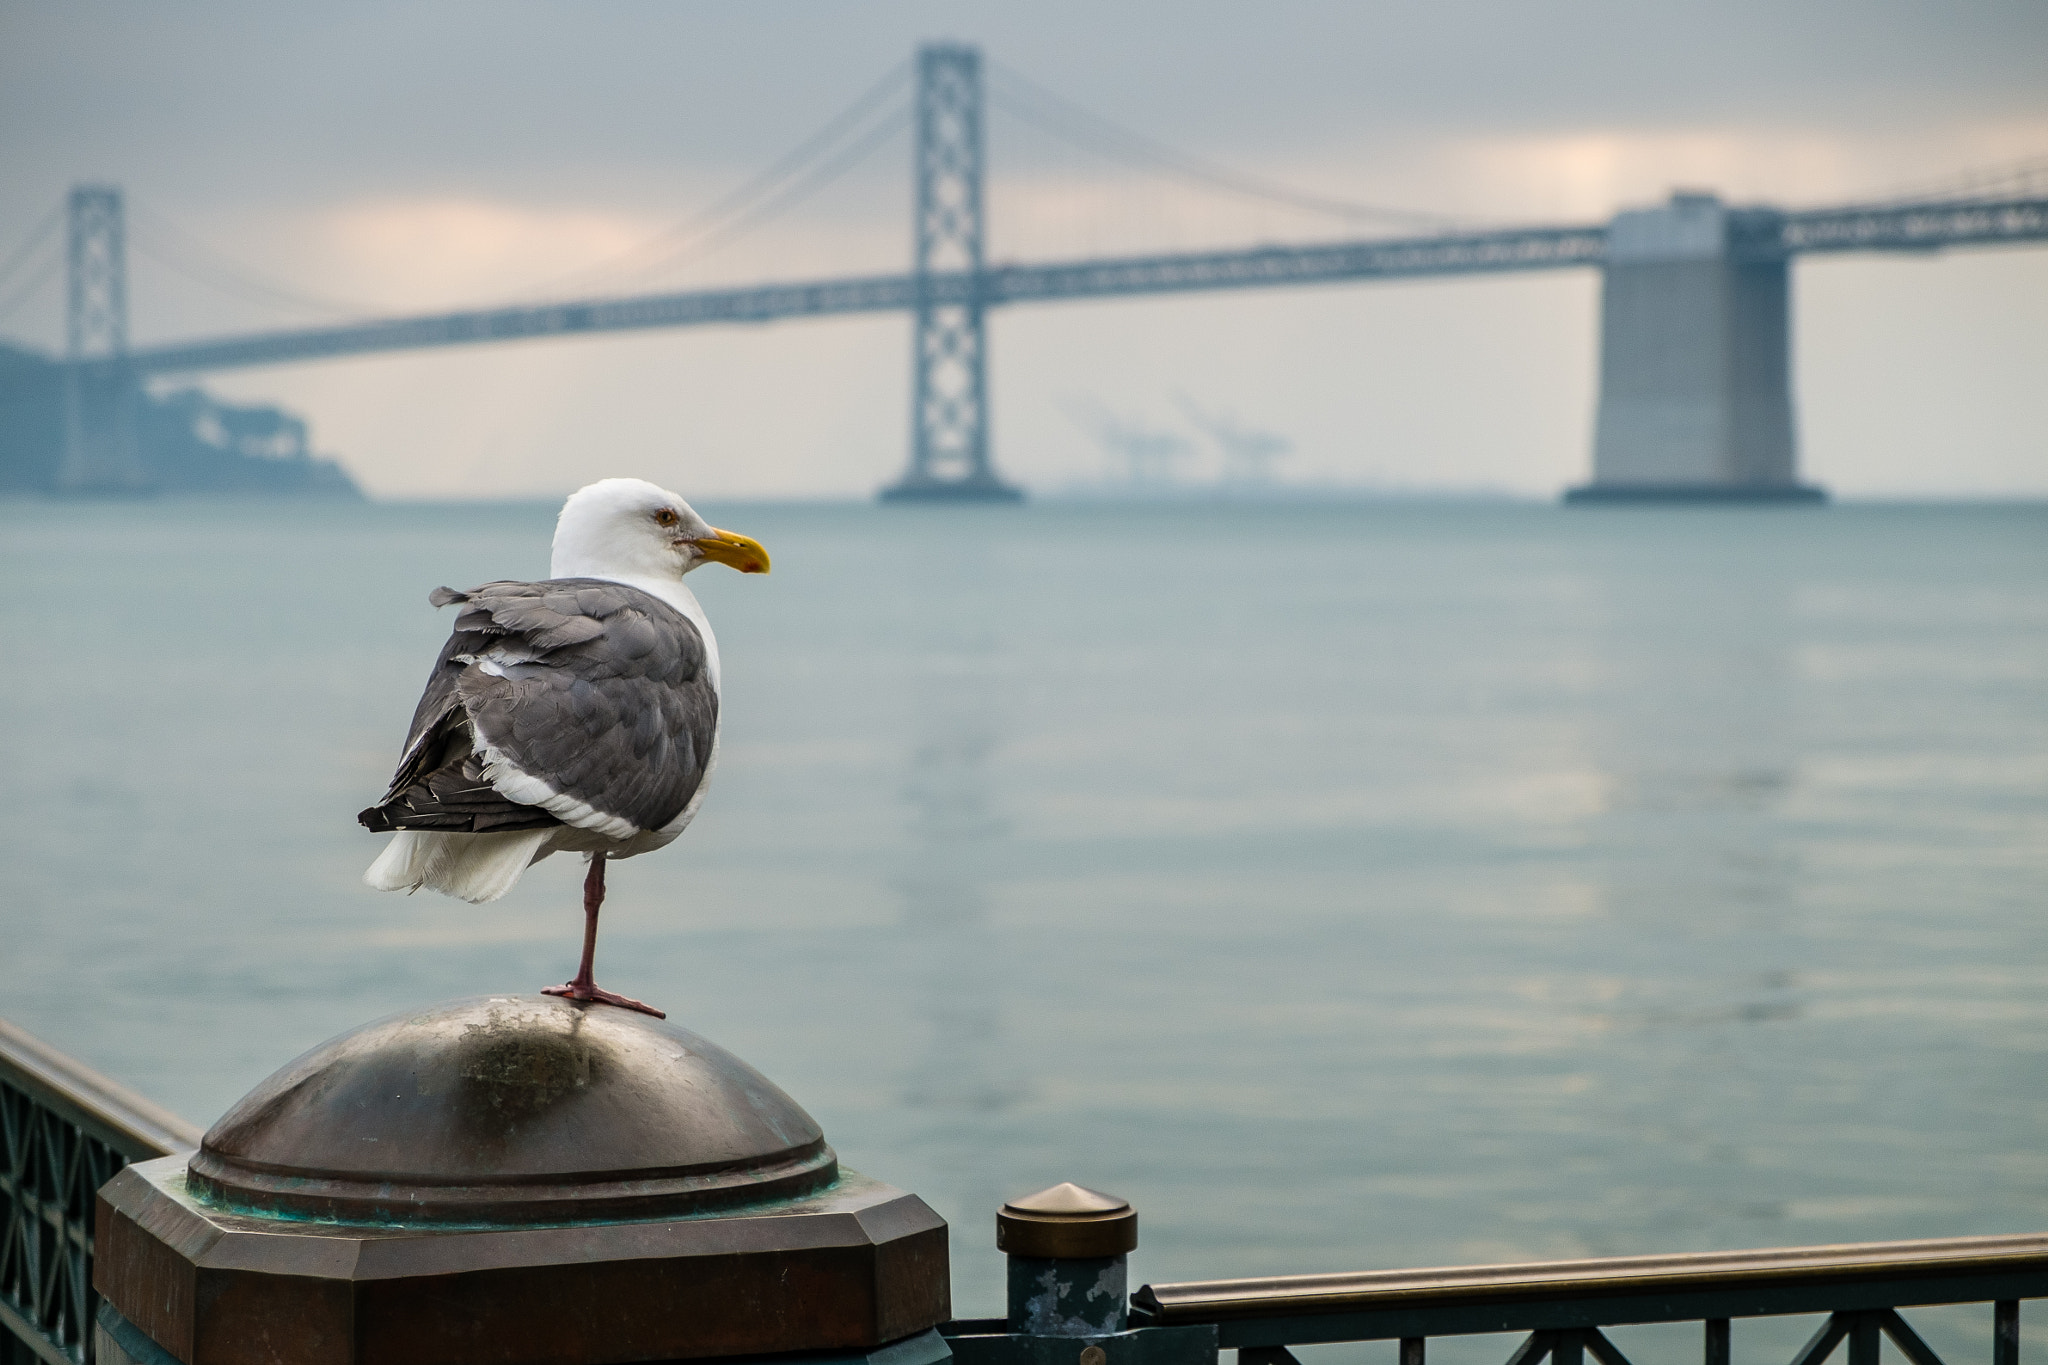 Photograph SF#1 - Lost Leg Seagull and Bay Bridge by Jérôme Gauthié on 500px